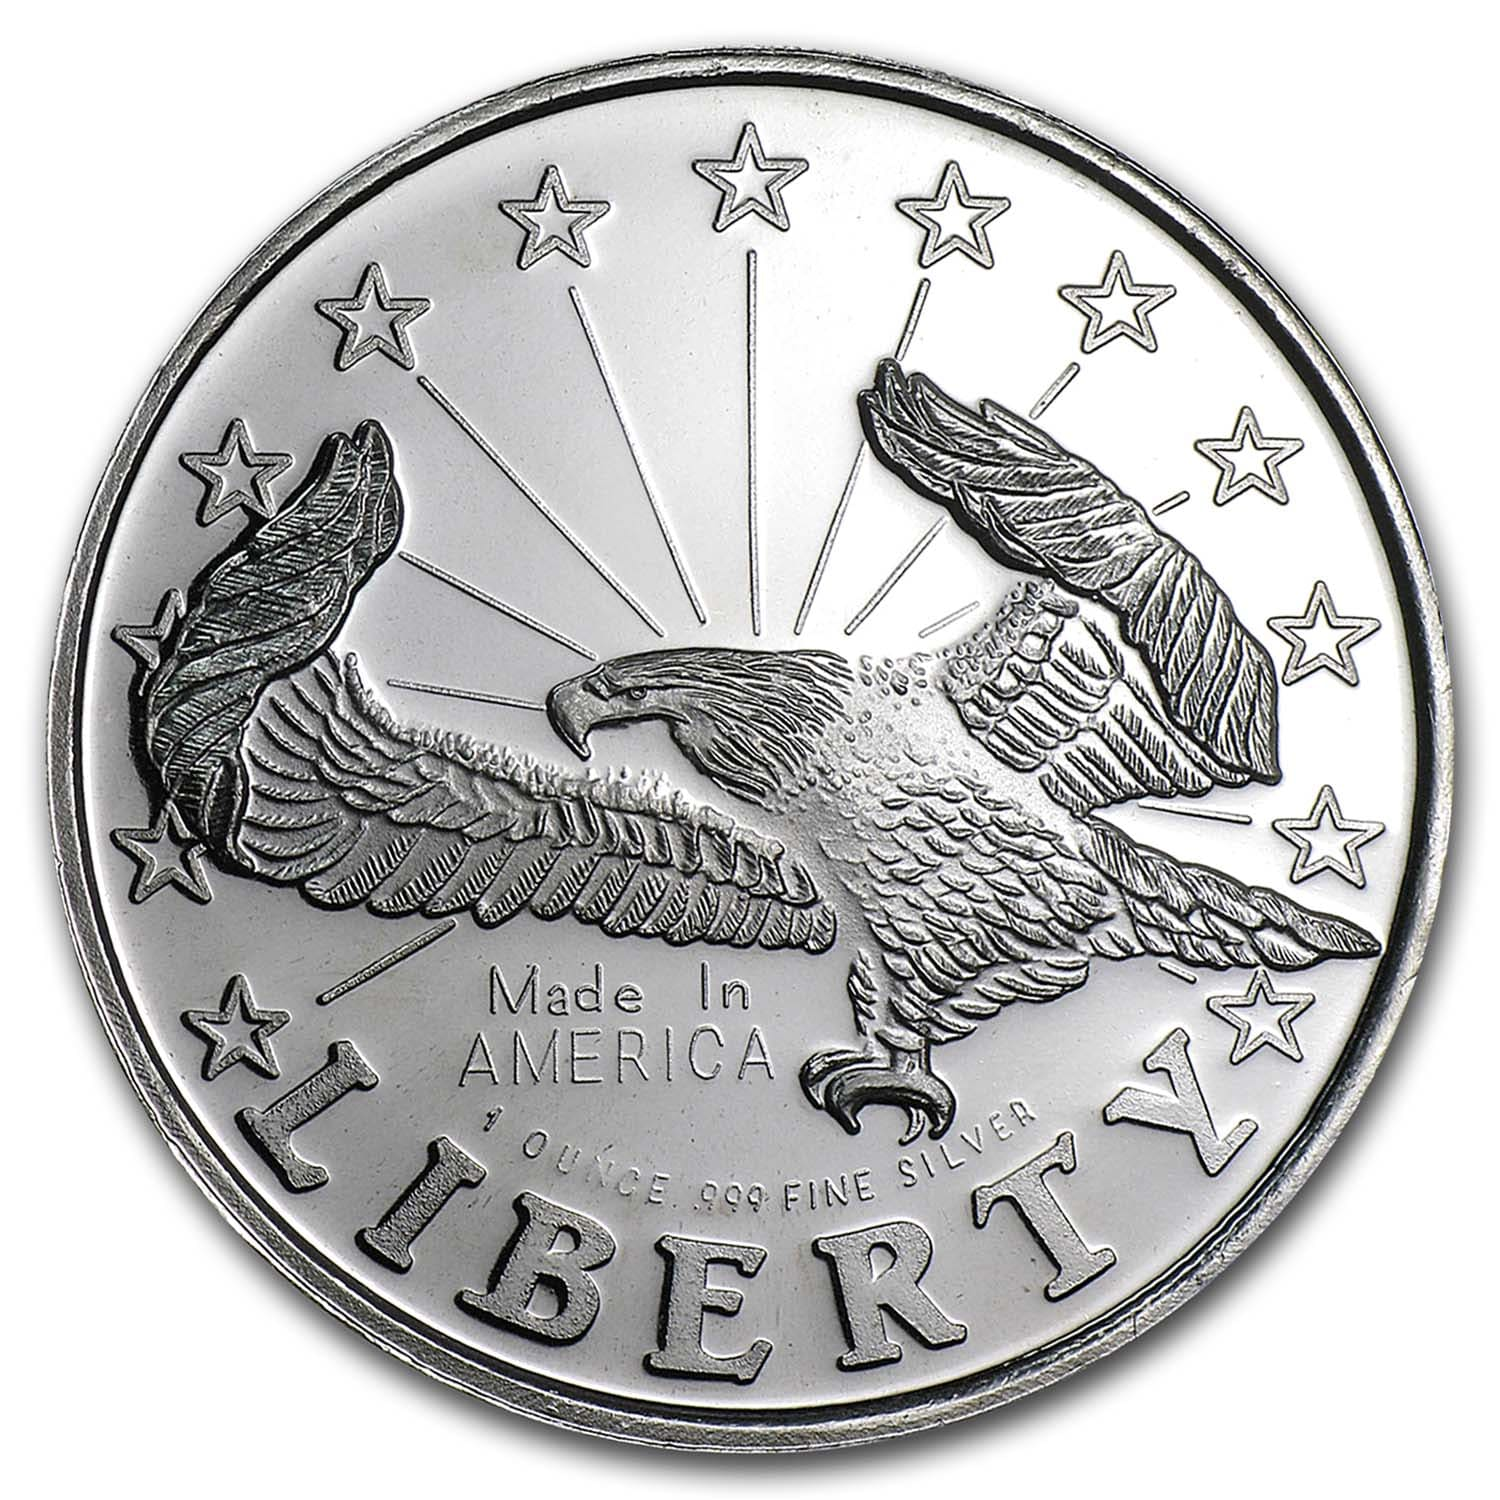 1 oz Silver Rounds - Liberty Eagle